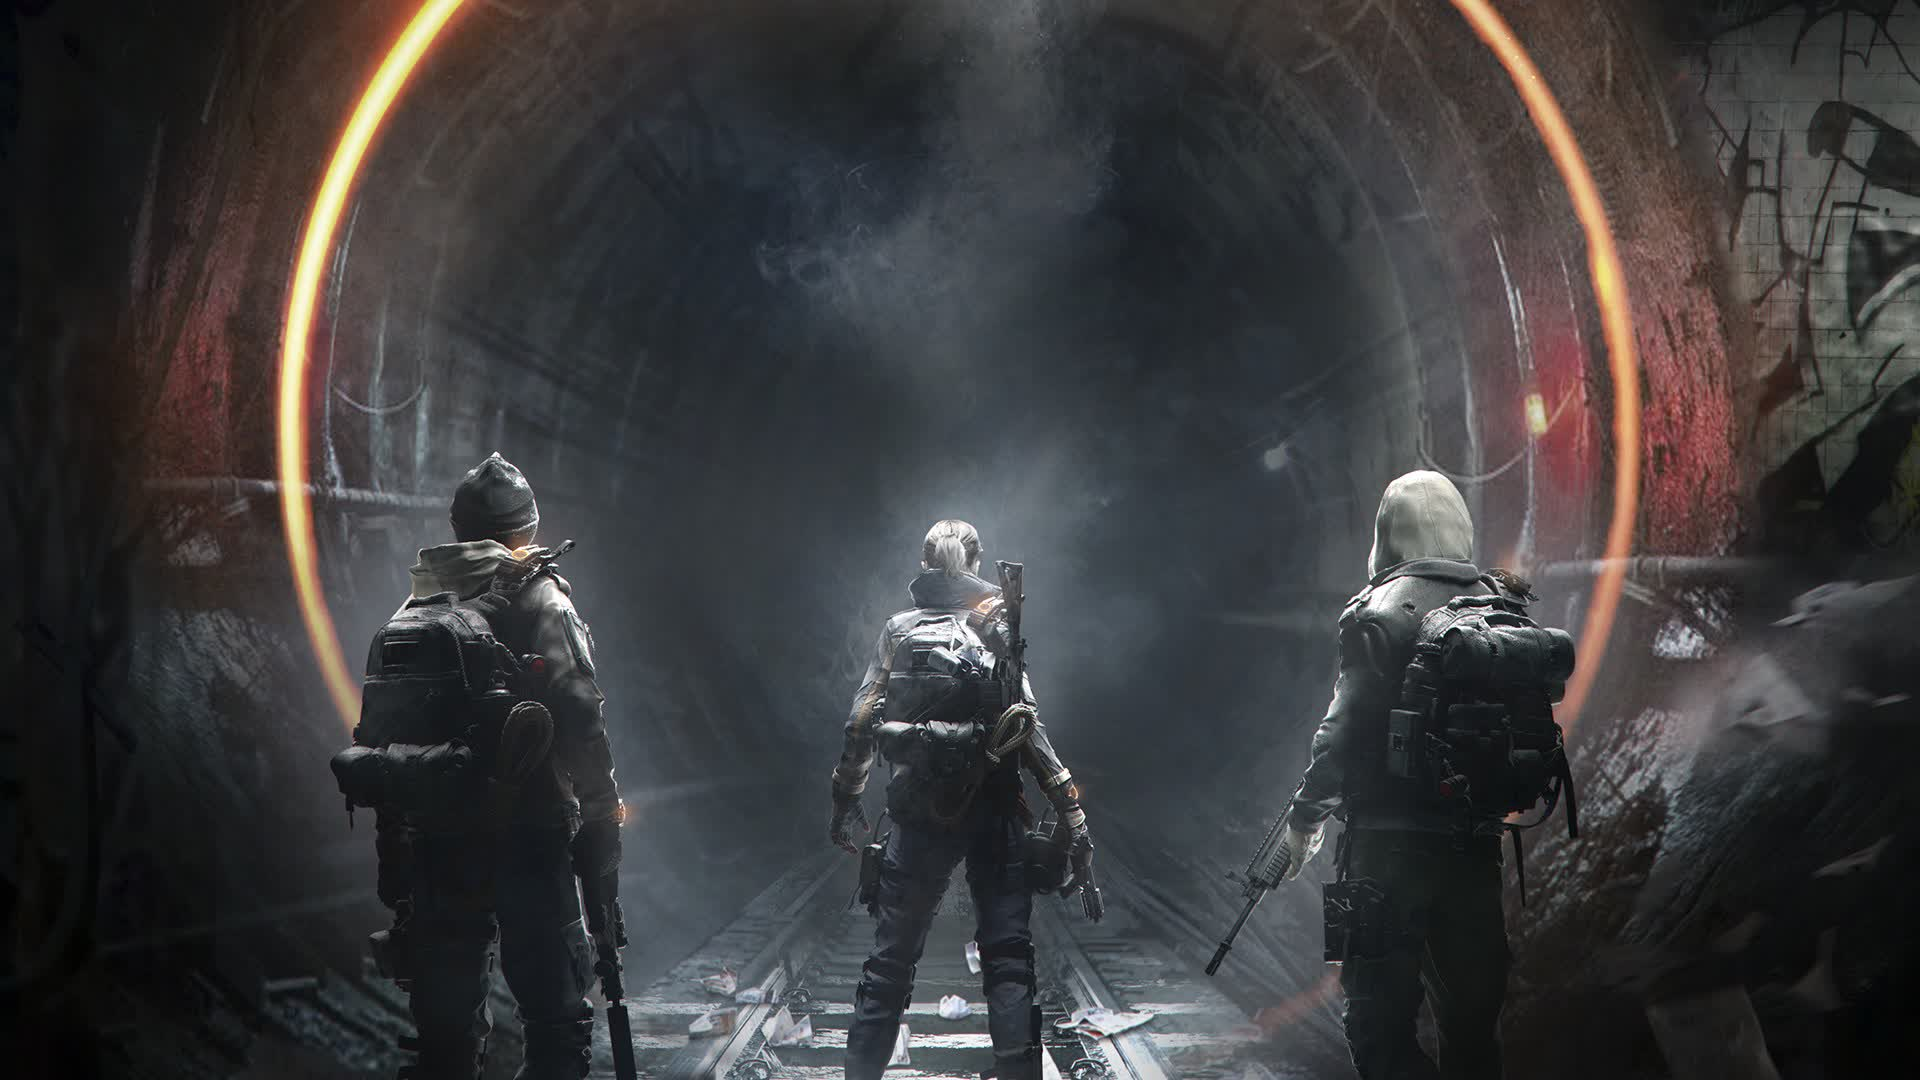 Ubisoft is expanding the Tom Clancy's The Division franchise with new games, content, and a movie